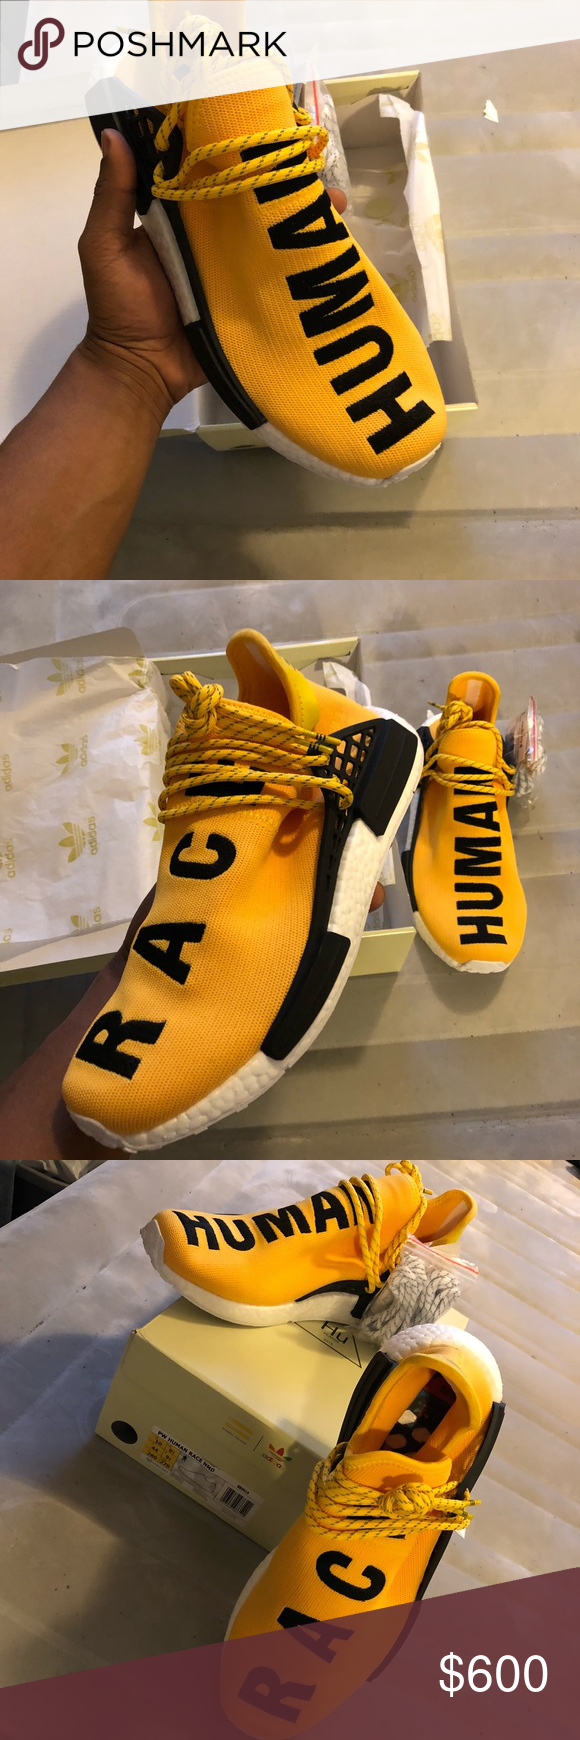 bbef9ddd0c03 Sneaker. Gentleman Style. Menswear. Adidas Human Race Yellow Adidas and  Pharrell come together once again to release the adidas HU